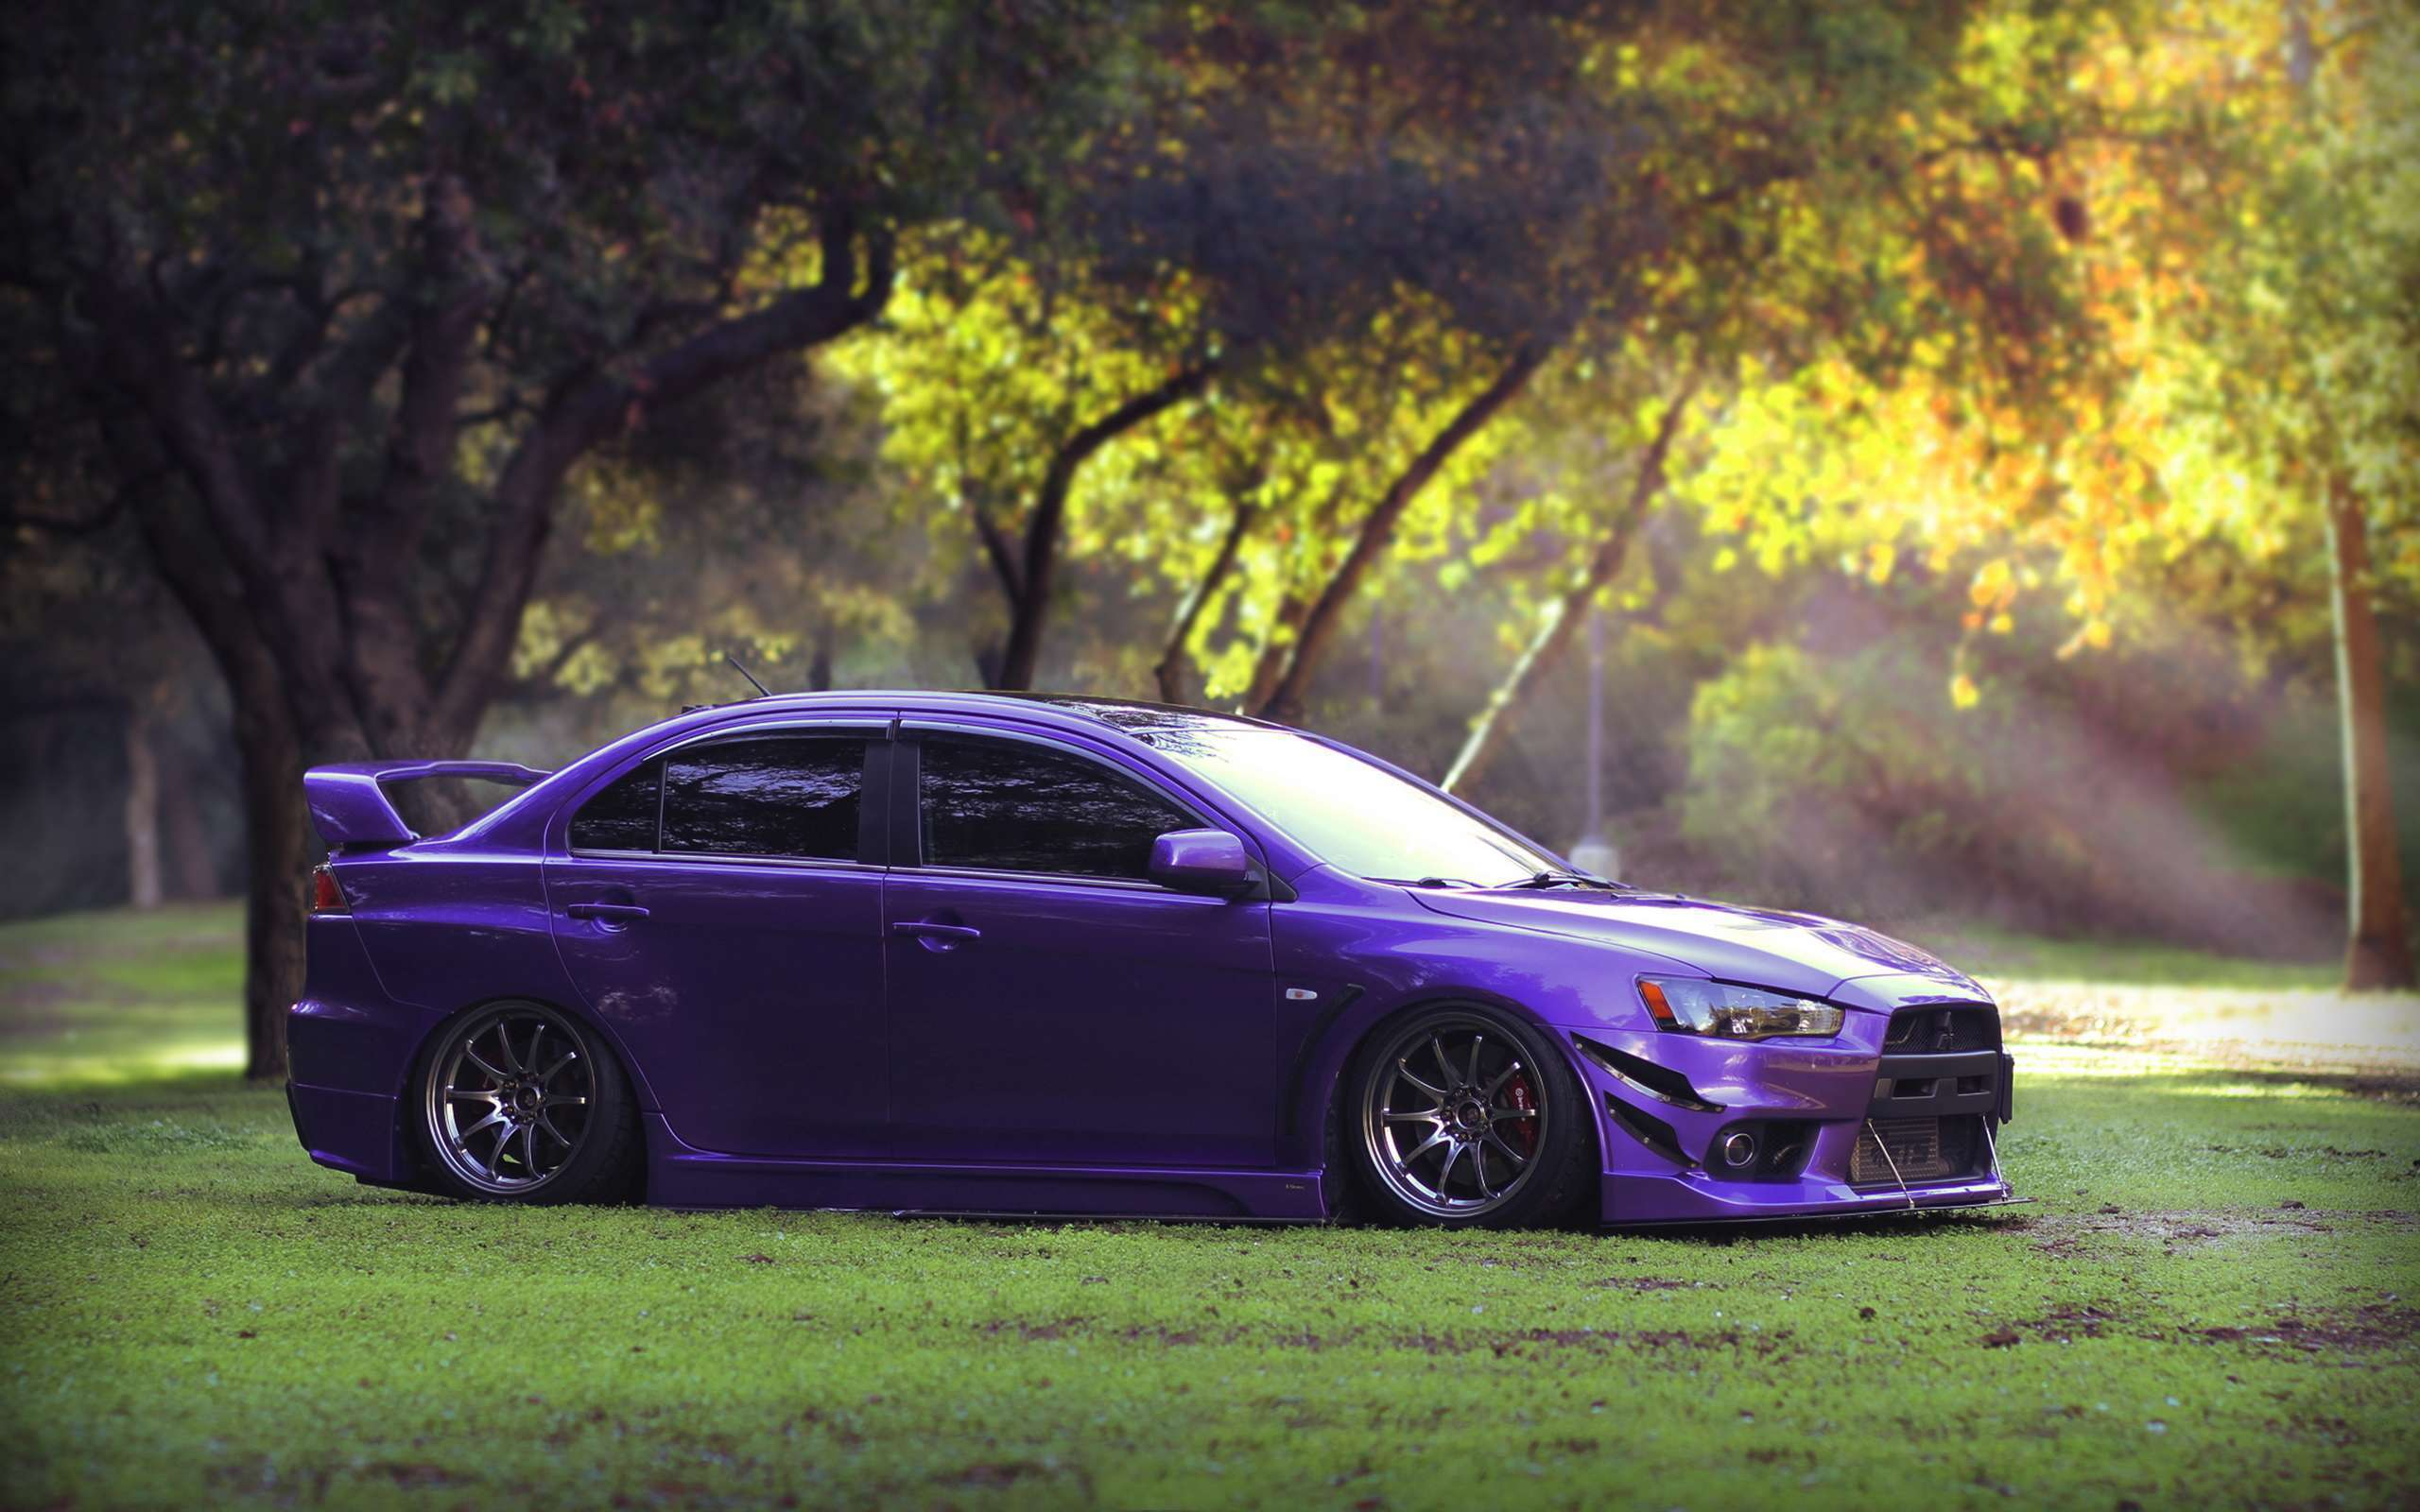 Mitsubishi Lancer Evo X Hd Wallpapers